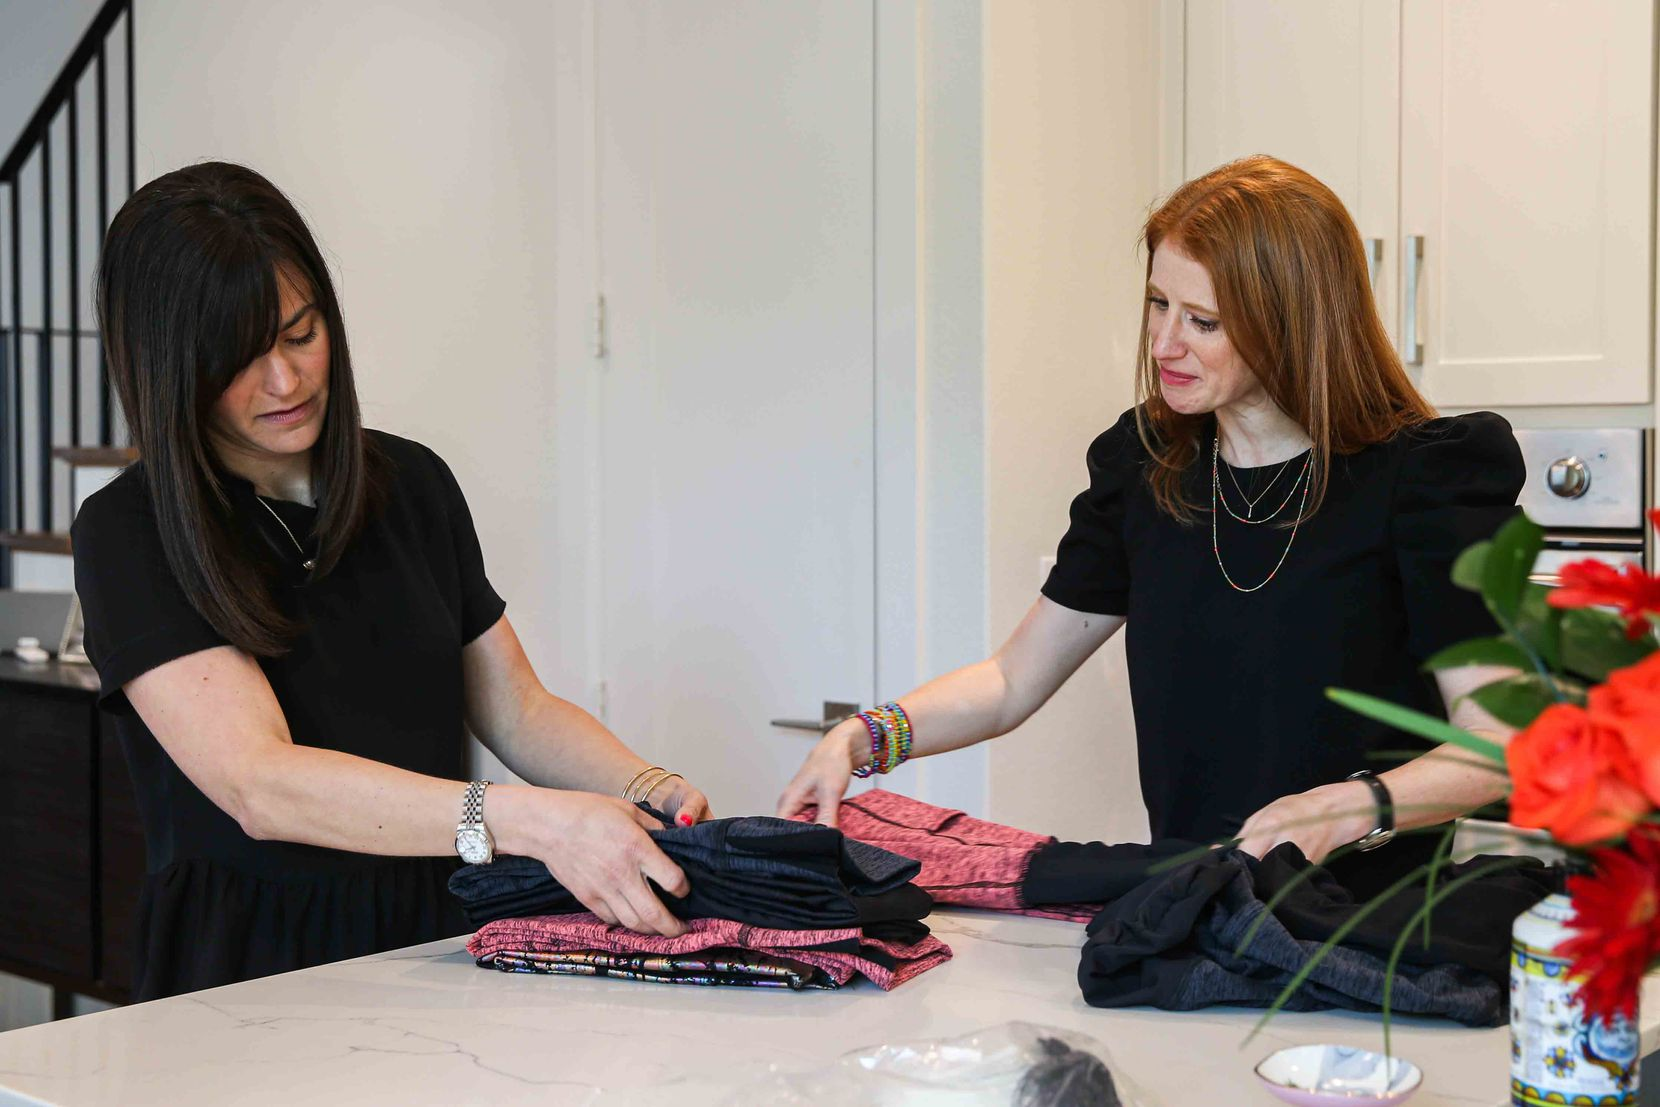 Loren Heller and Hillary Cullum fold their Berkley Clothing maternity workout leggings at their home office/work studio in Dallas.